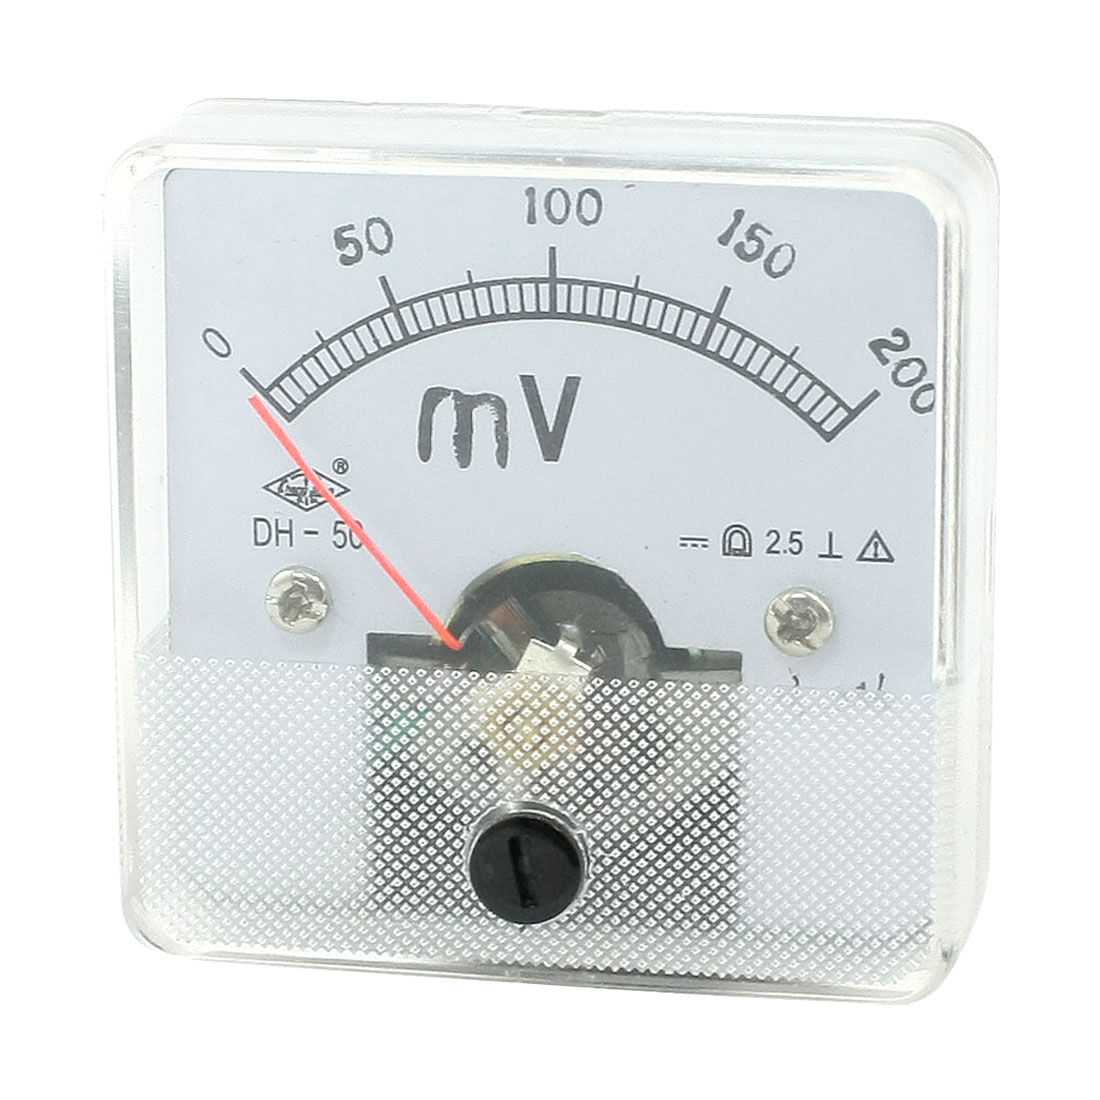 Square Shaped Voltage Panel Meter Voltmeter DH-50 DC 0-200mV